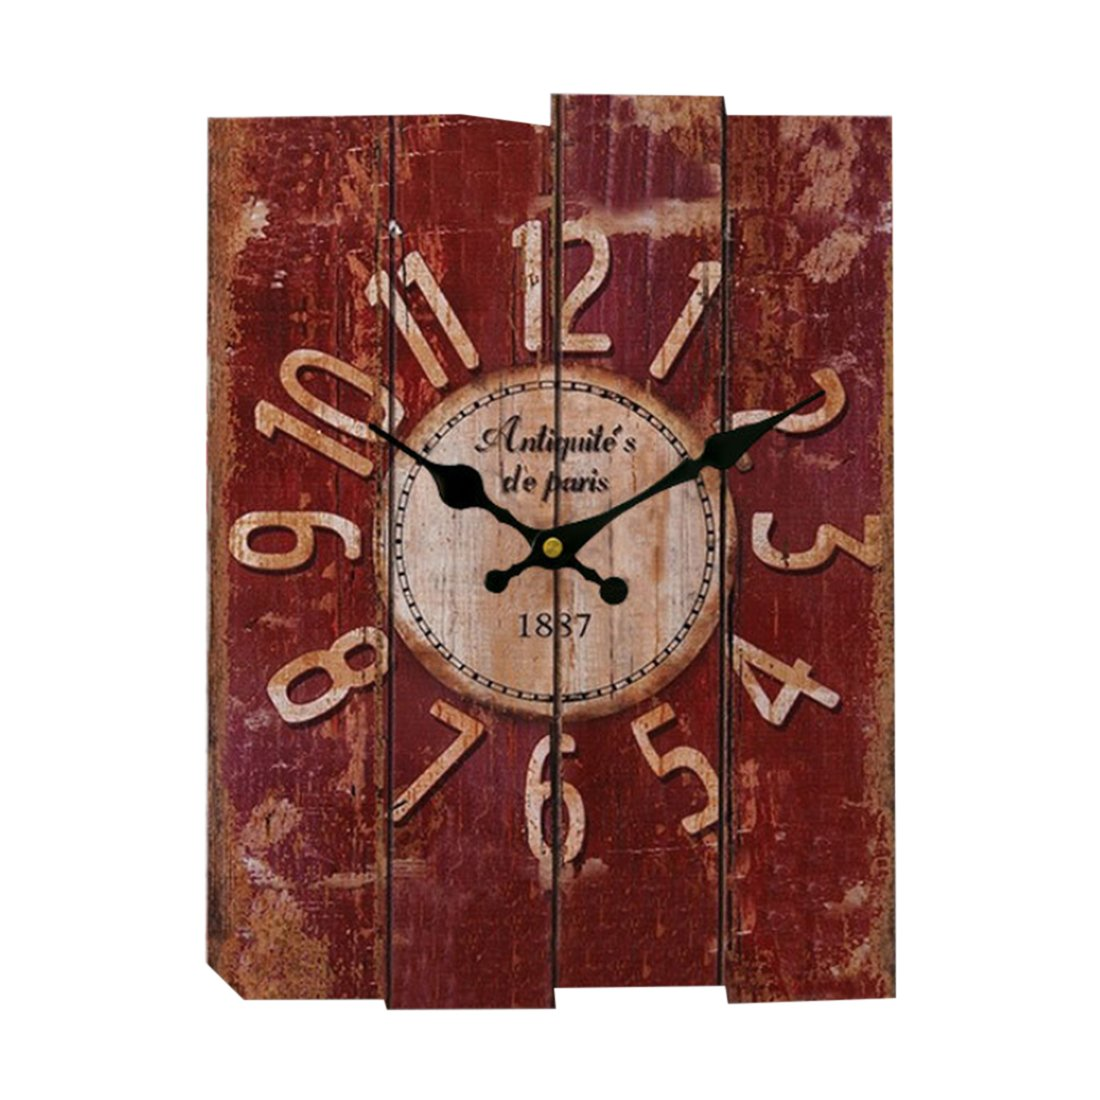 Fcoson Retro Style Rectangle Wall Clock Creative Silent Decorative Clock for Cafes Pub Hotel Garden Living Room Red